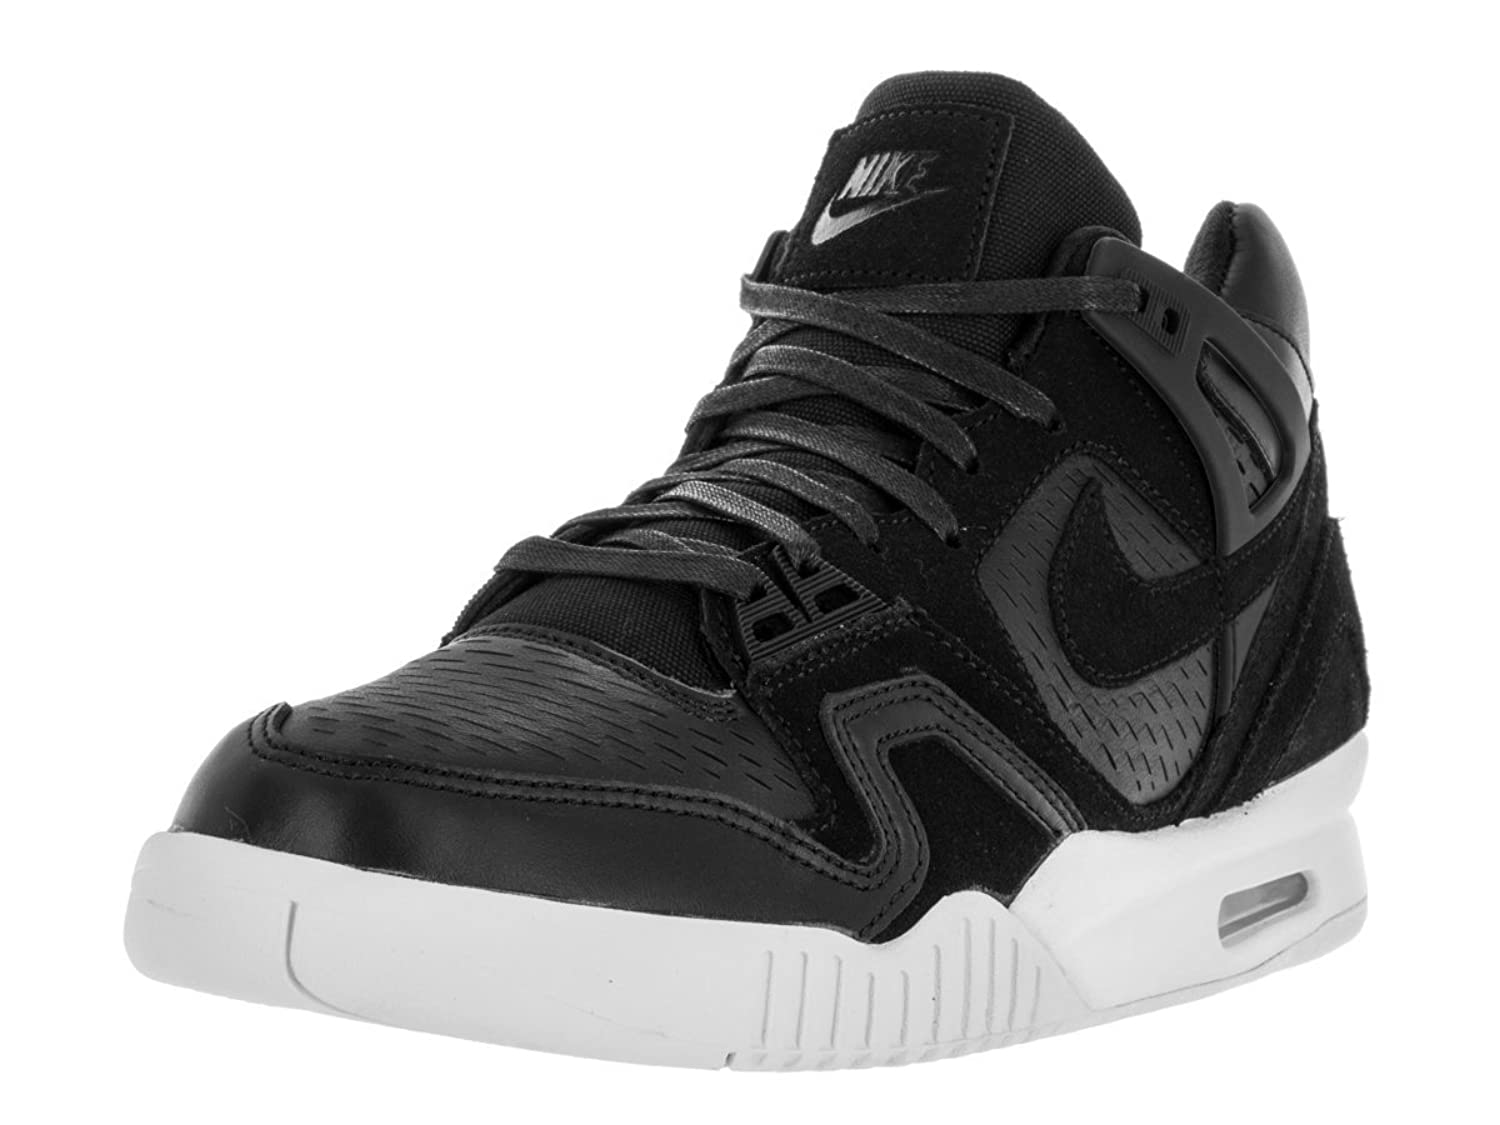 NIKE Men\'s Air Tech Challenge II Laser Tennis Shoe Black/Black/White